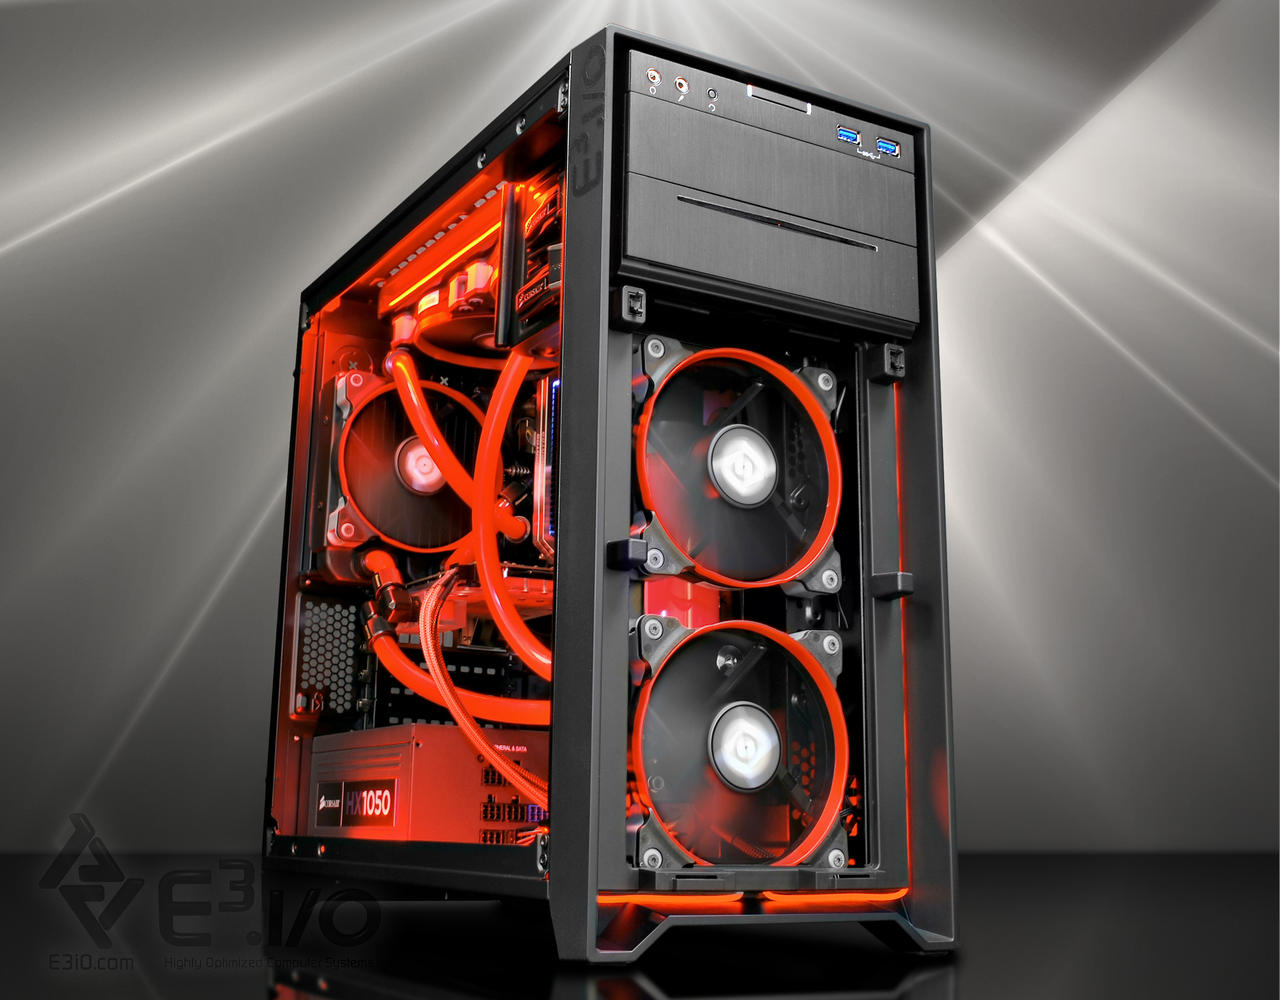 #BE400D E3iO XI Scorpion Gaming PC By E3iopc On DeviantArt Recommended 7167 Water Cooled Tower pics with 1280x1000 px on helpvideos.info - Air Conditioners, Air Coolers and more